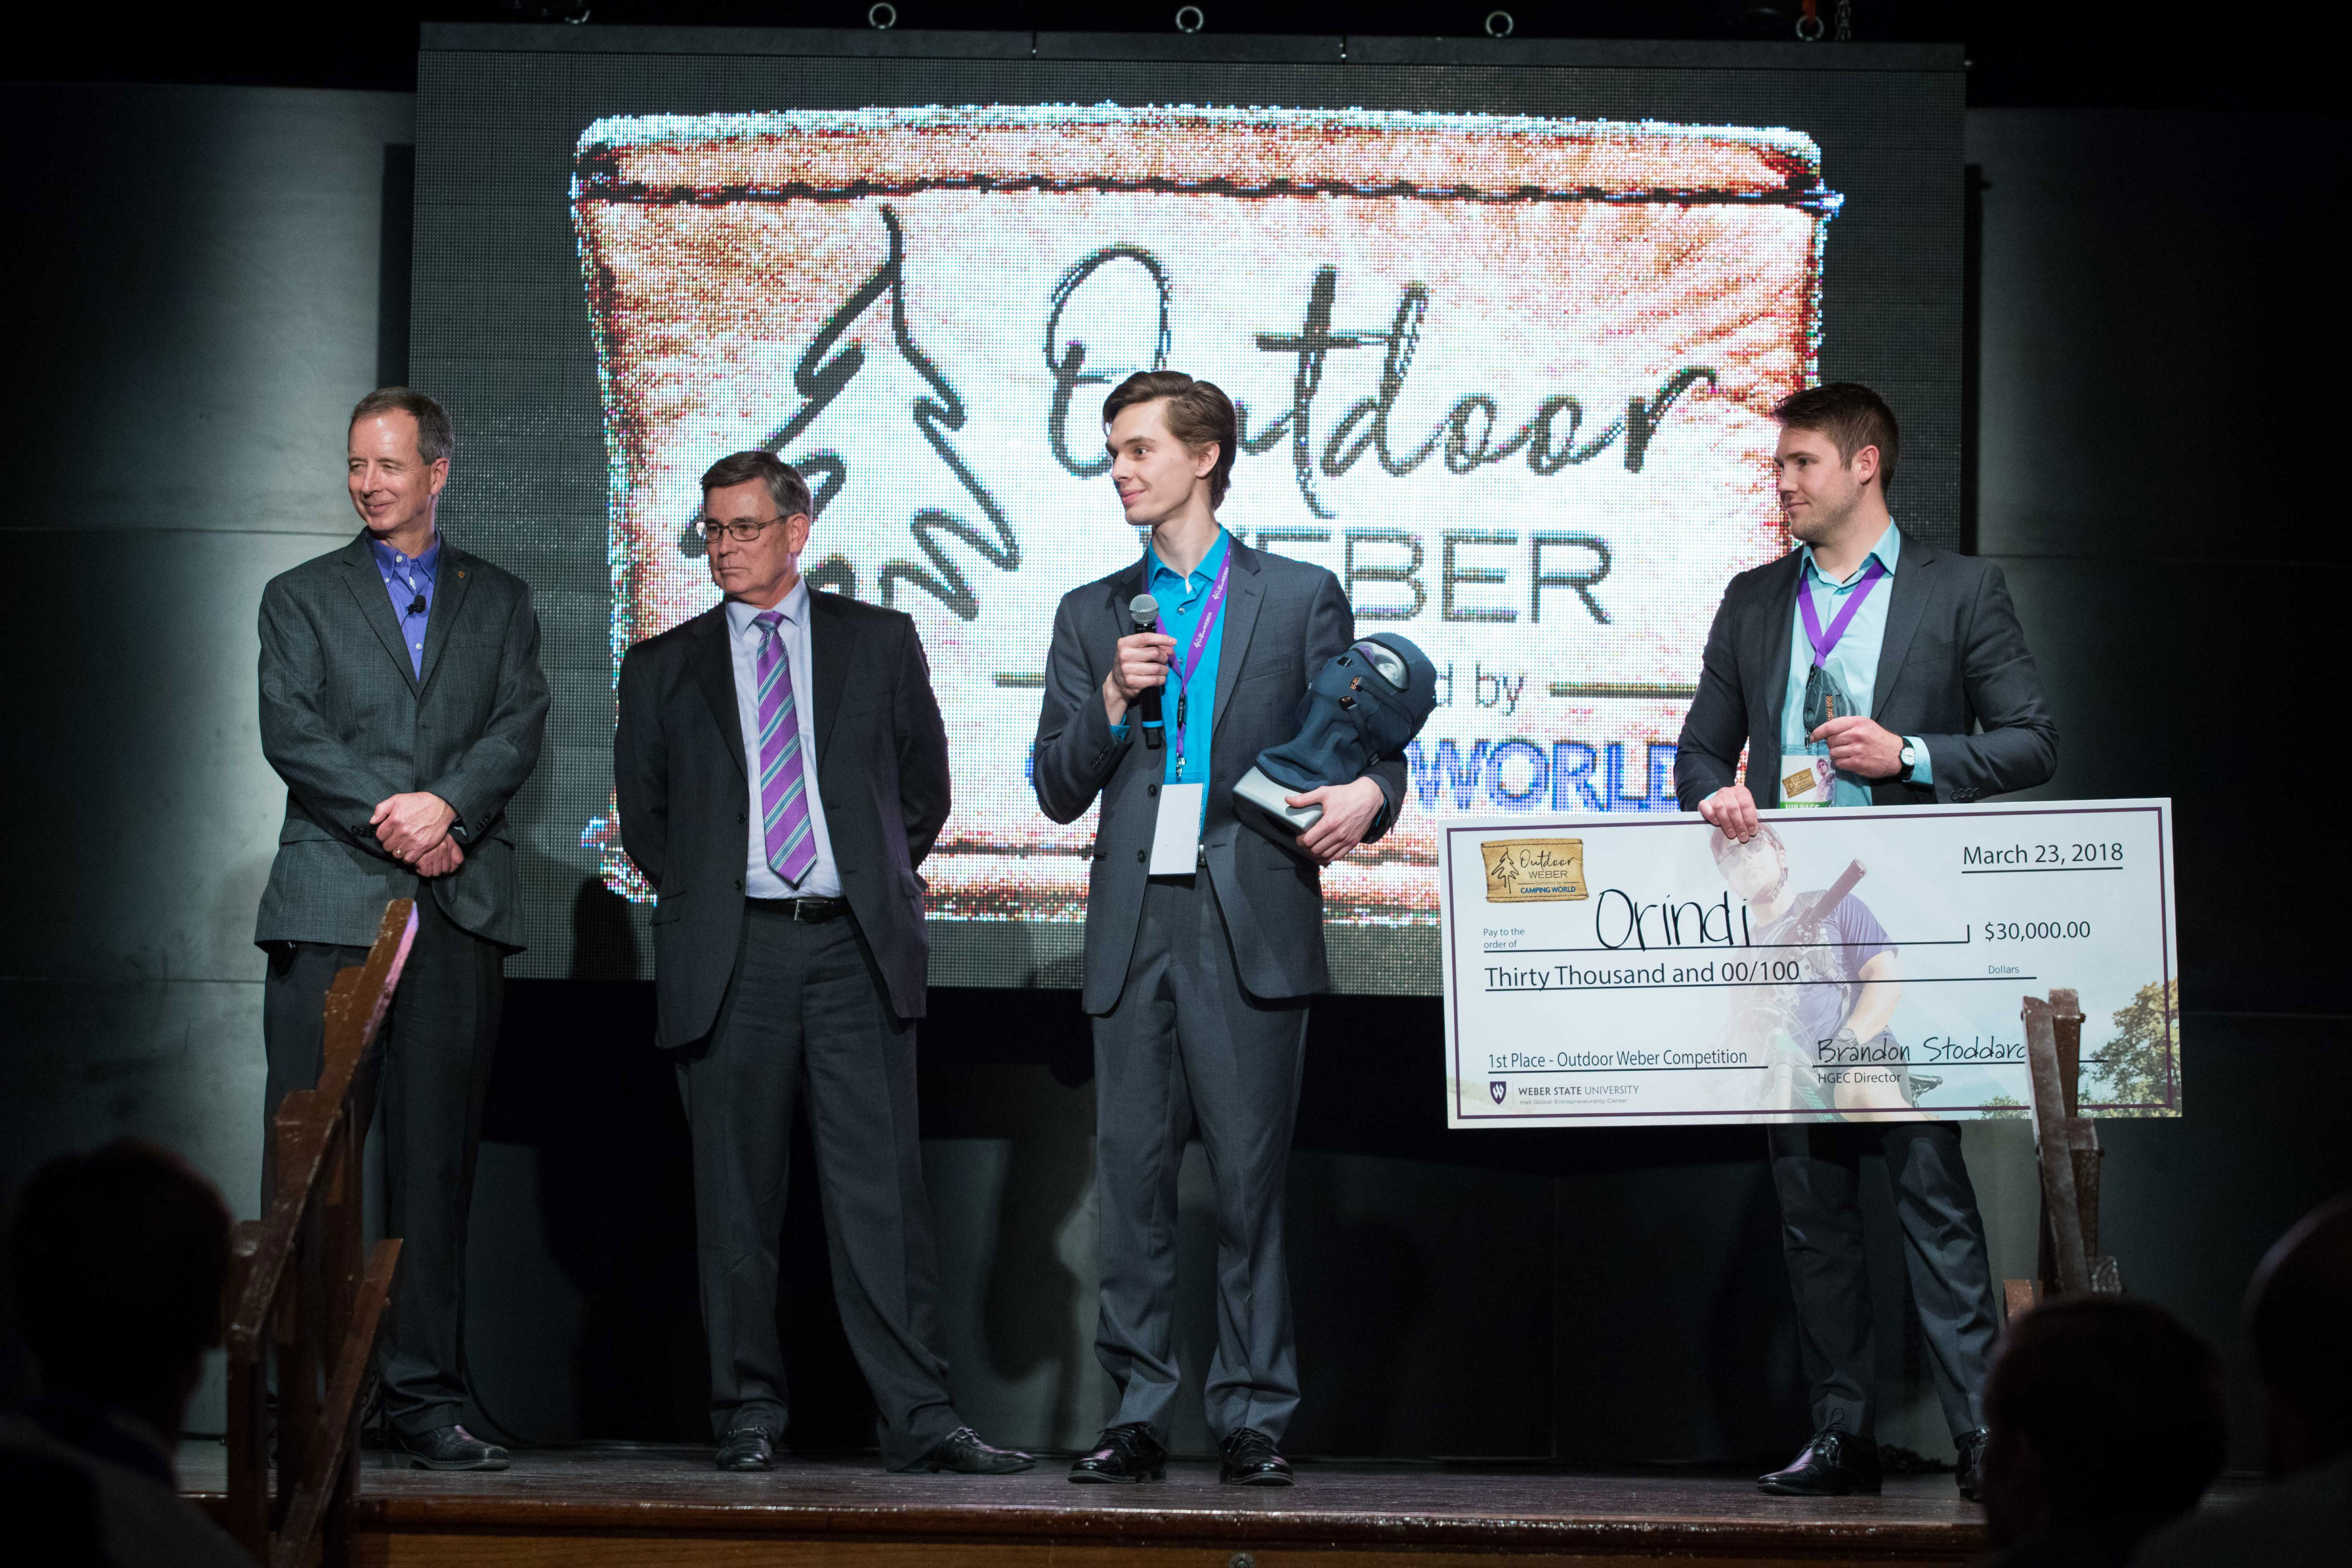 Outdoor Weber Idea Competition